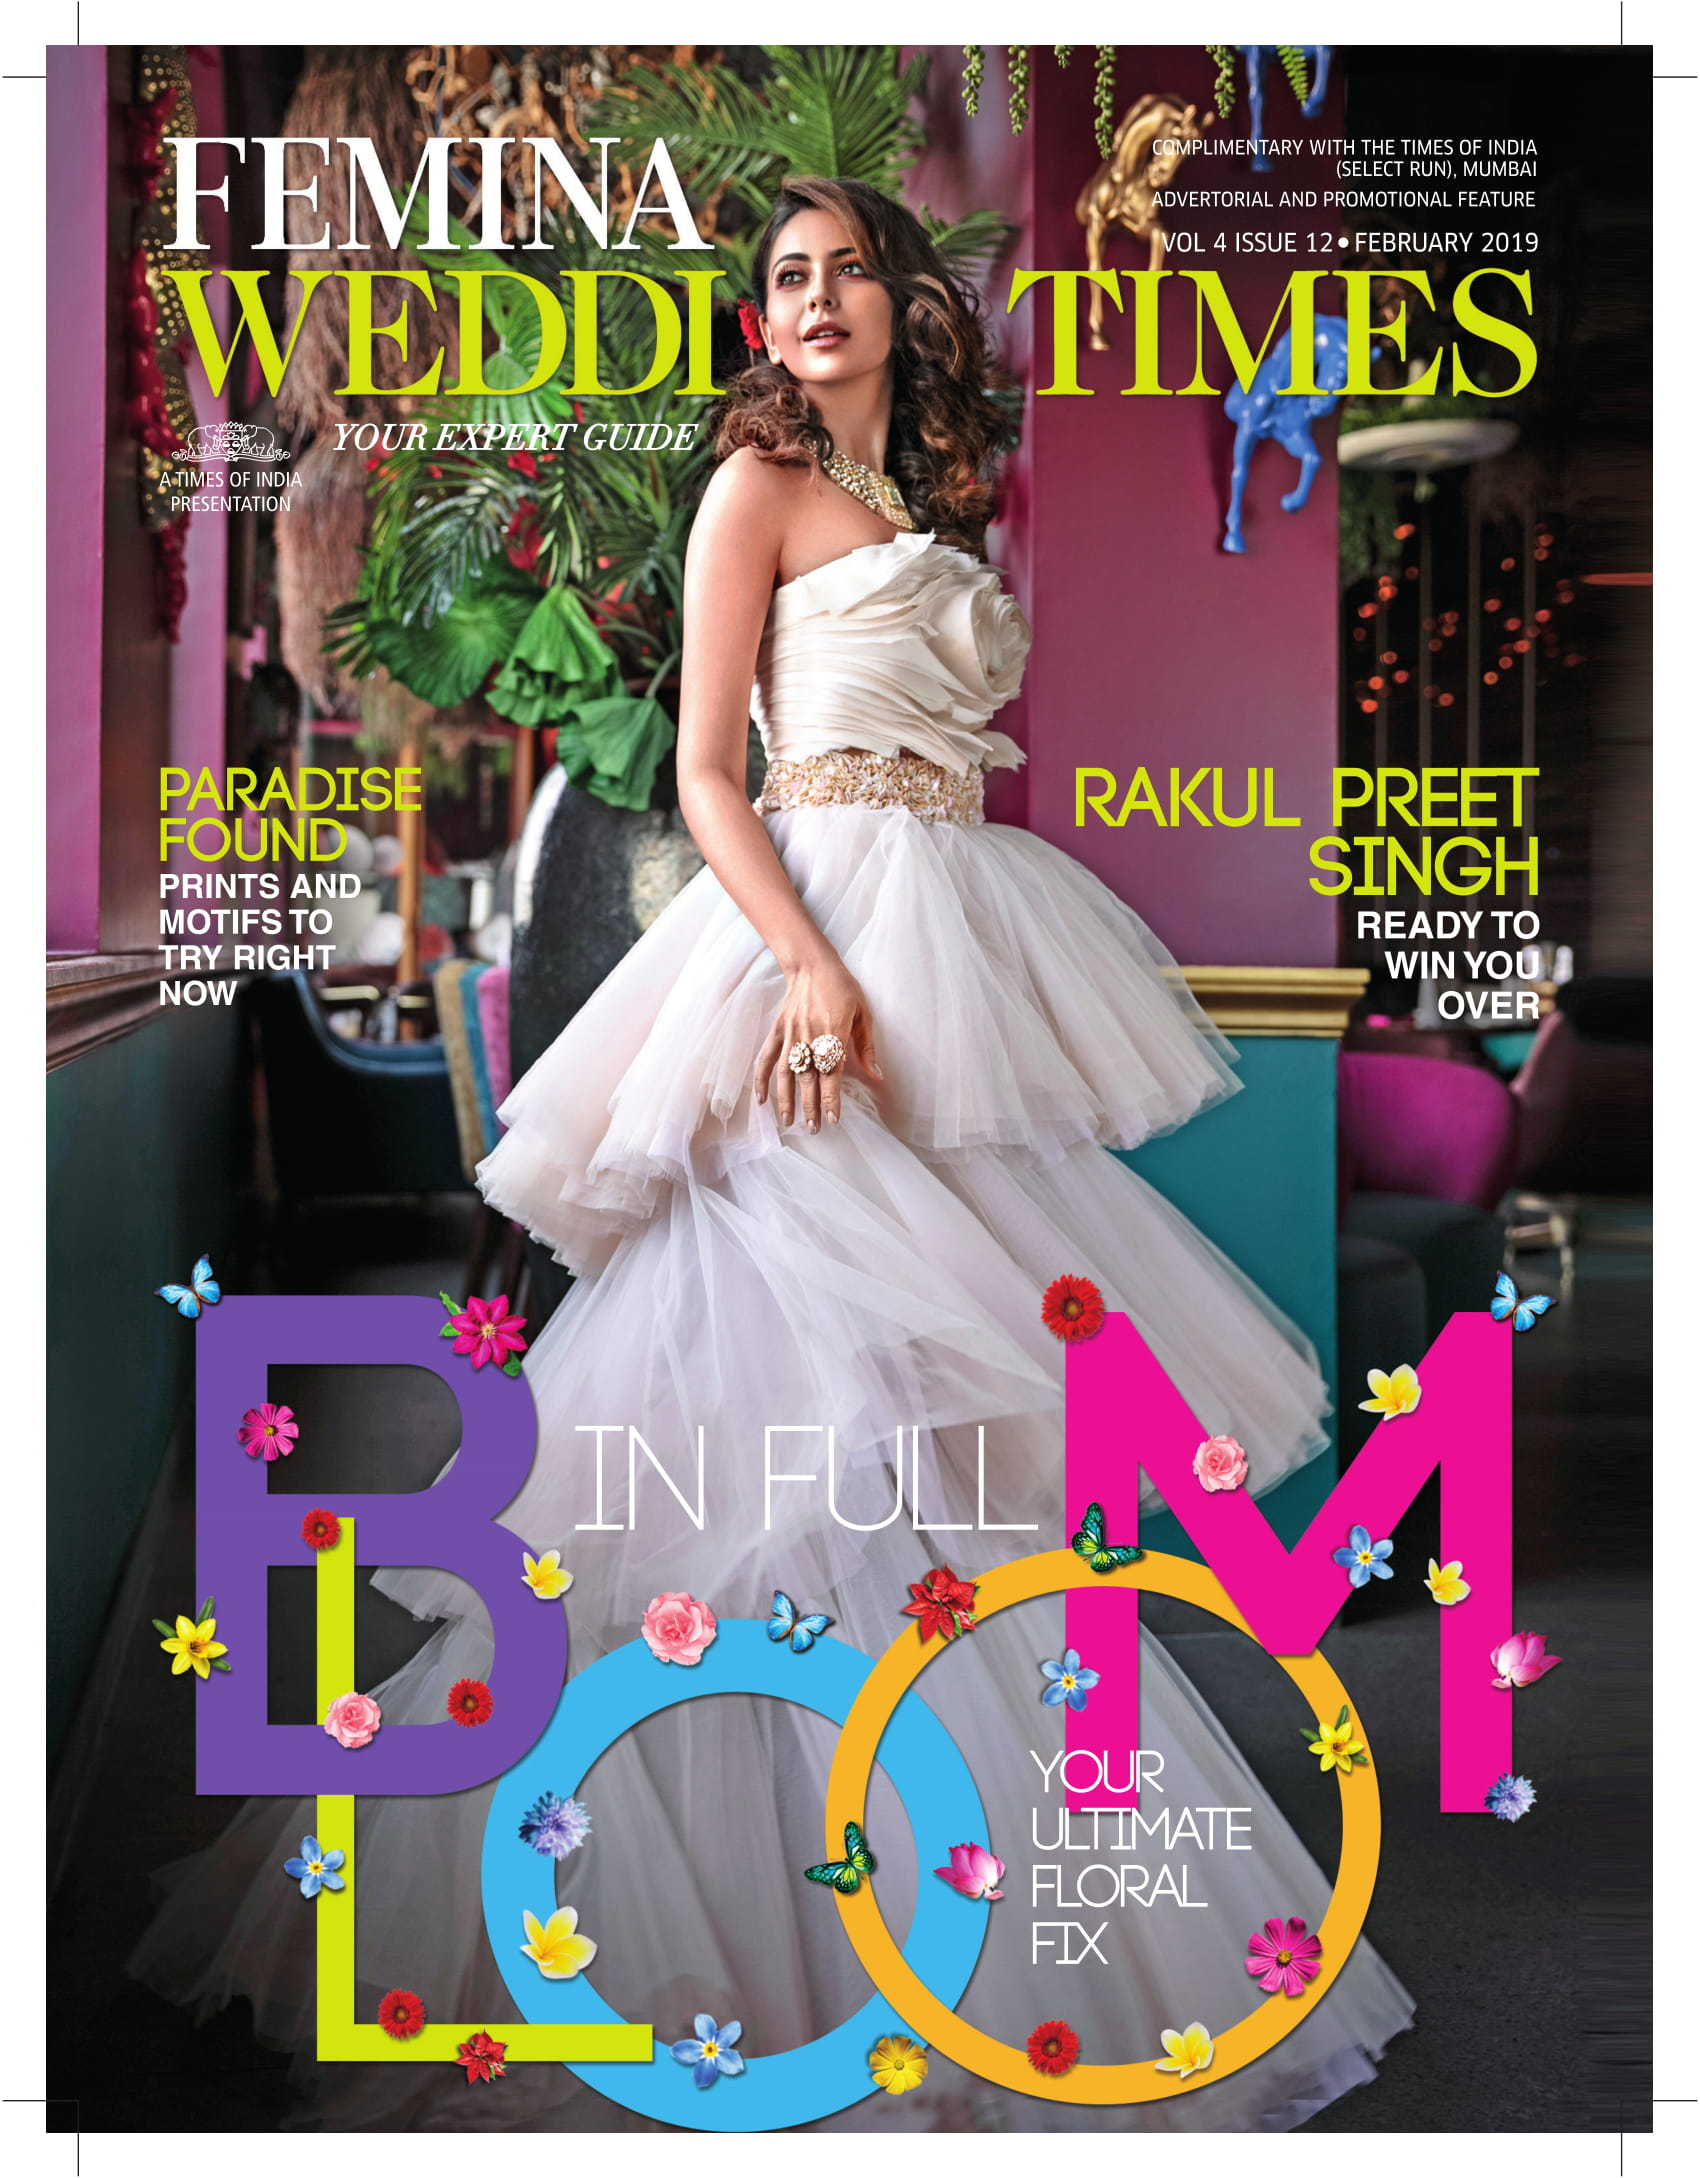 Femina Wedding Times - Cover Page